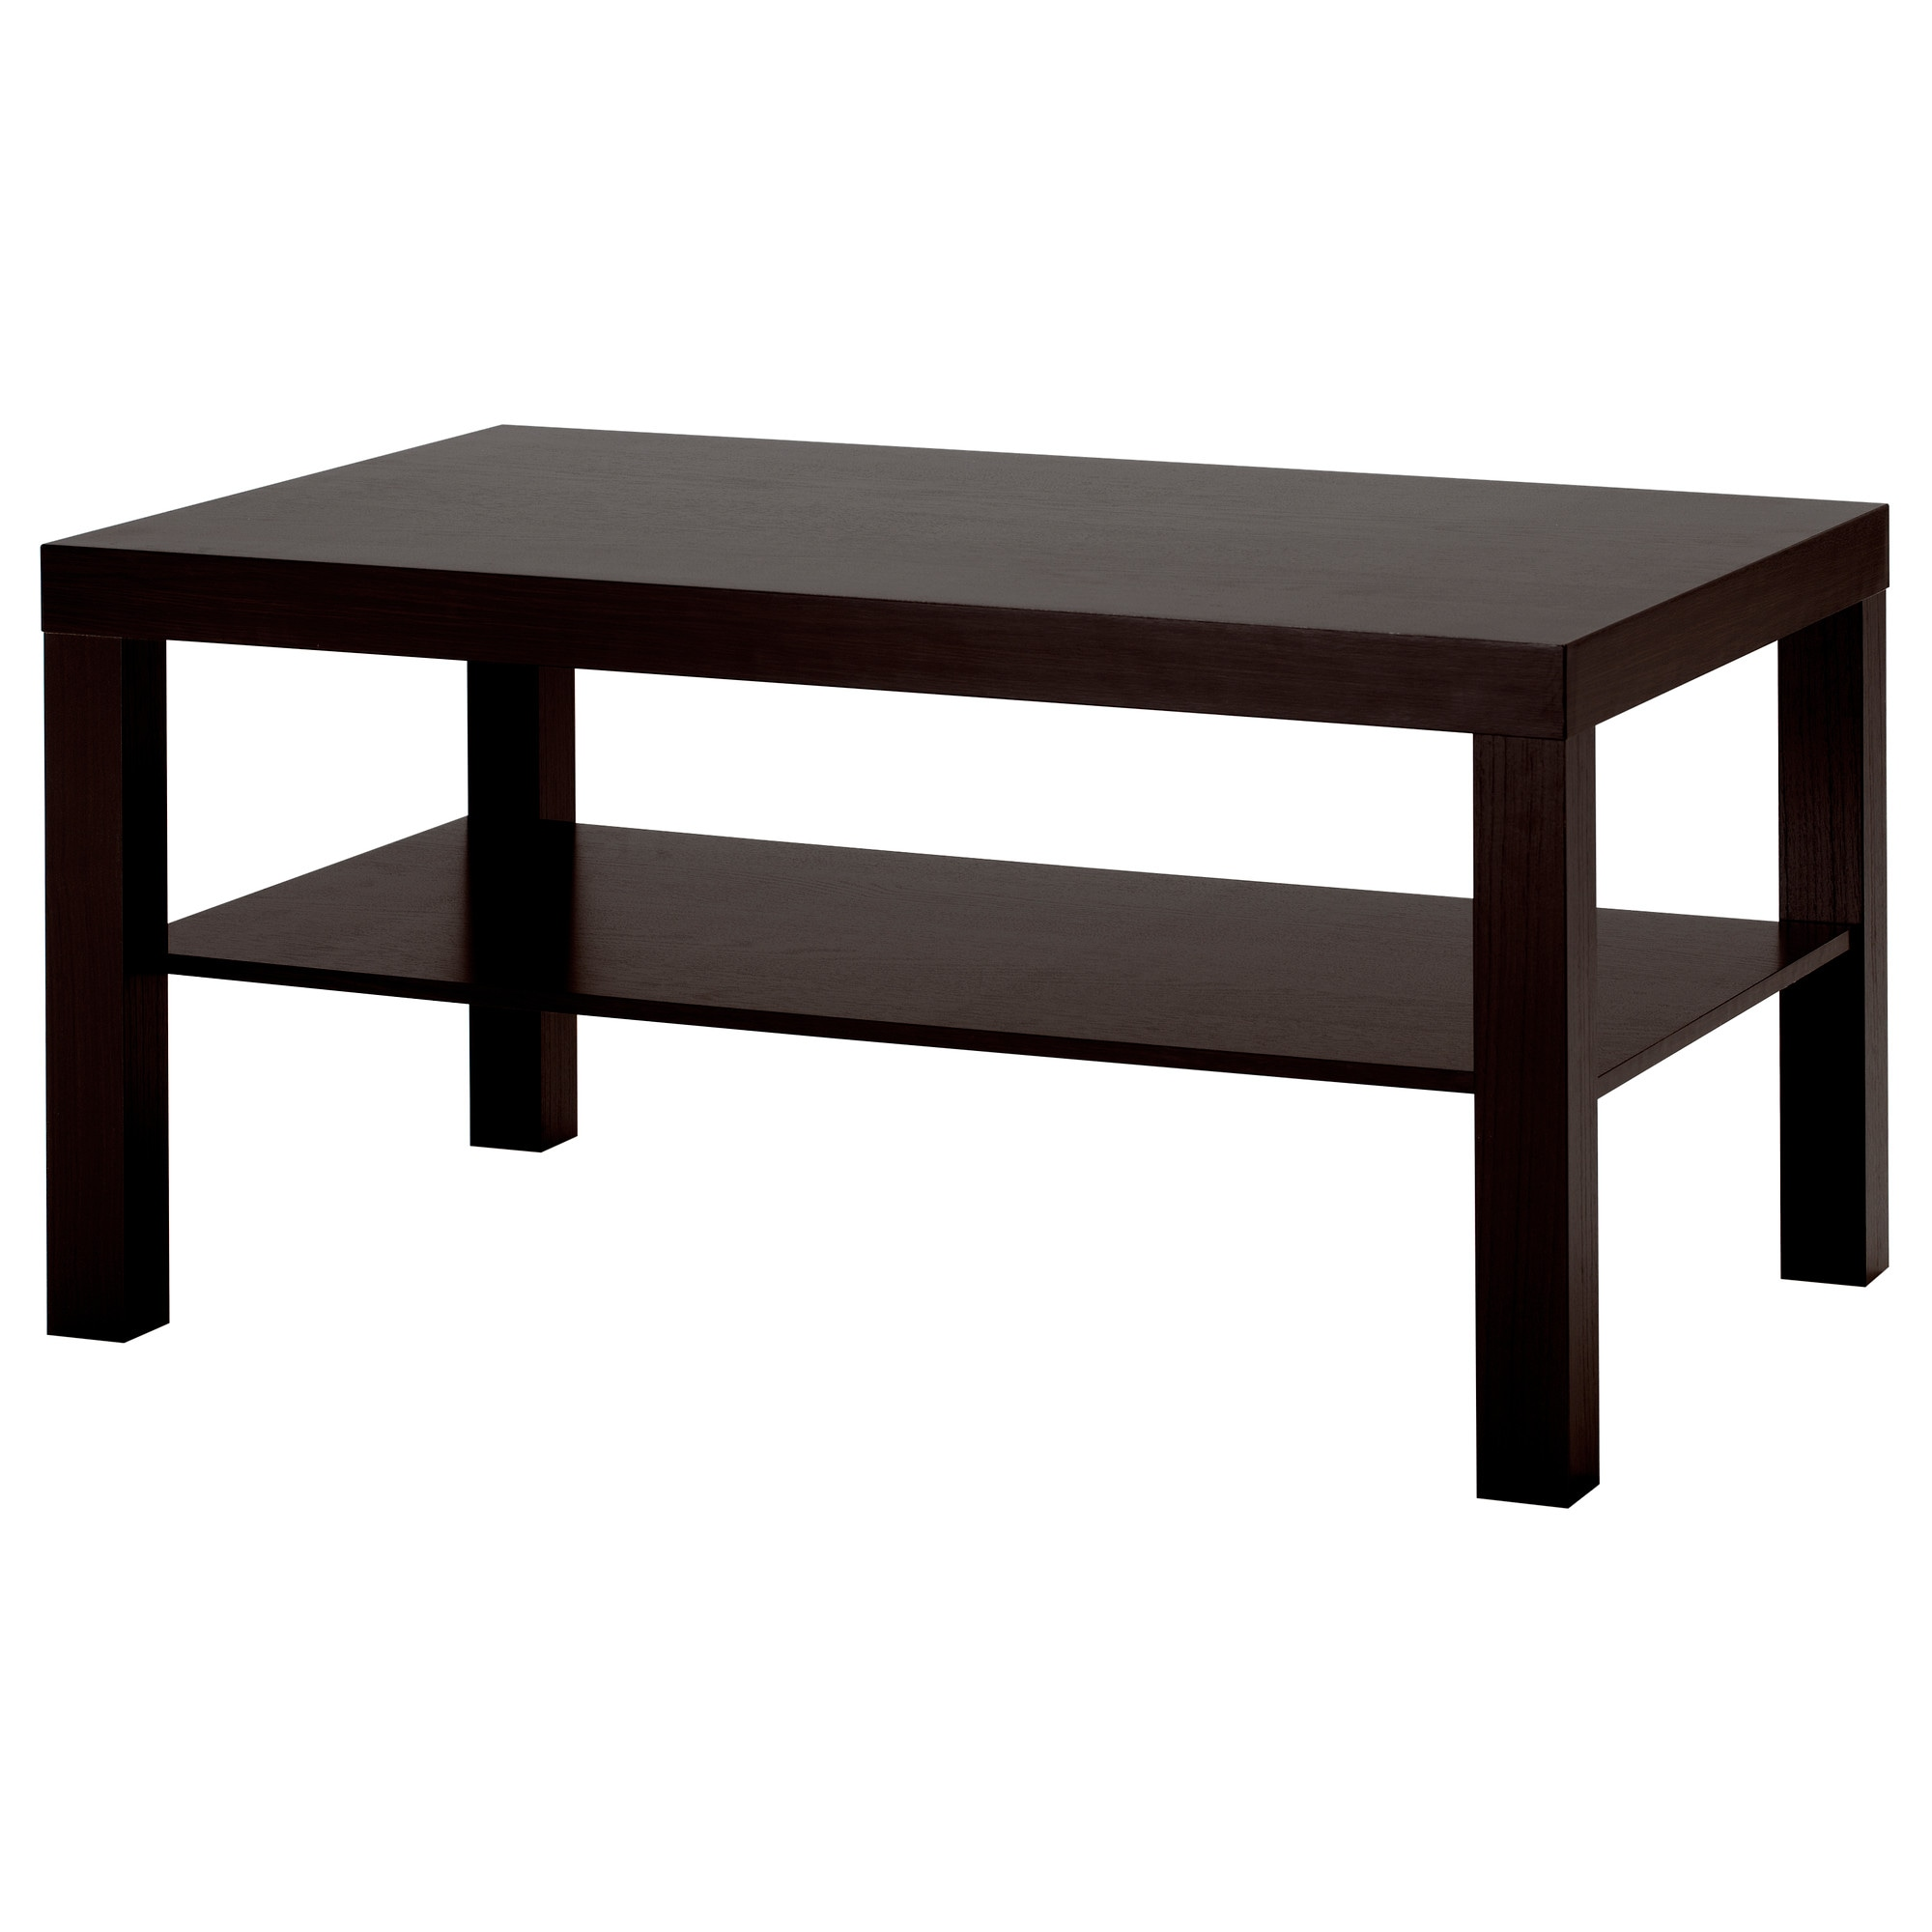 LACK Coffee table blackbrown 35 38x21 58 IKEA